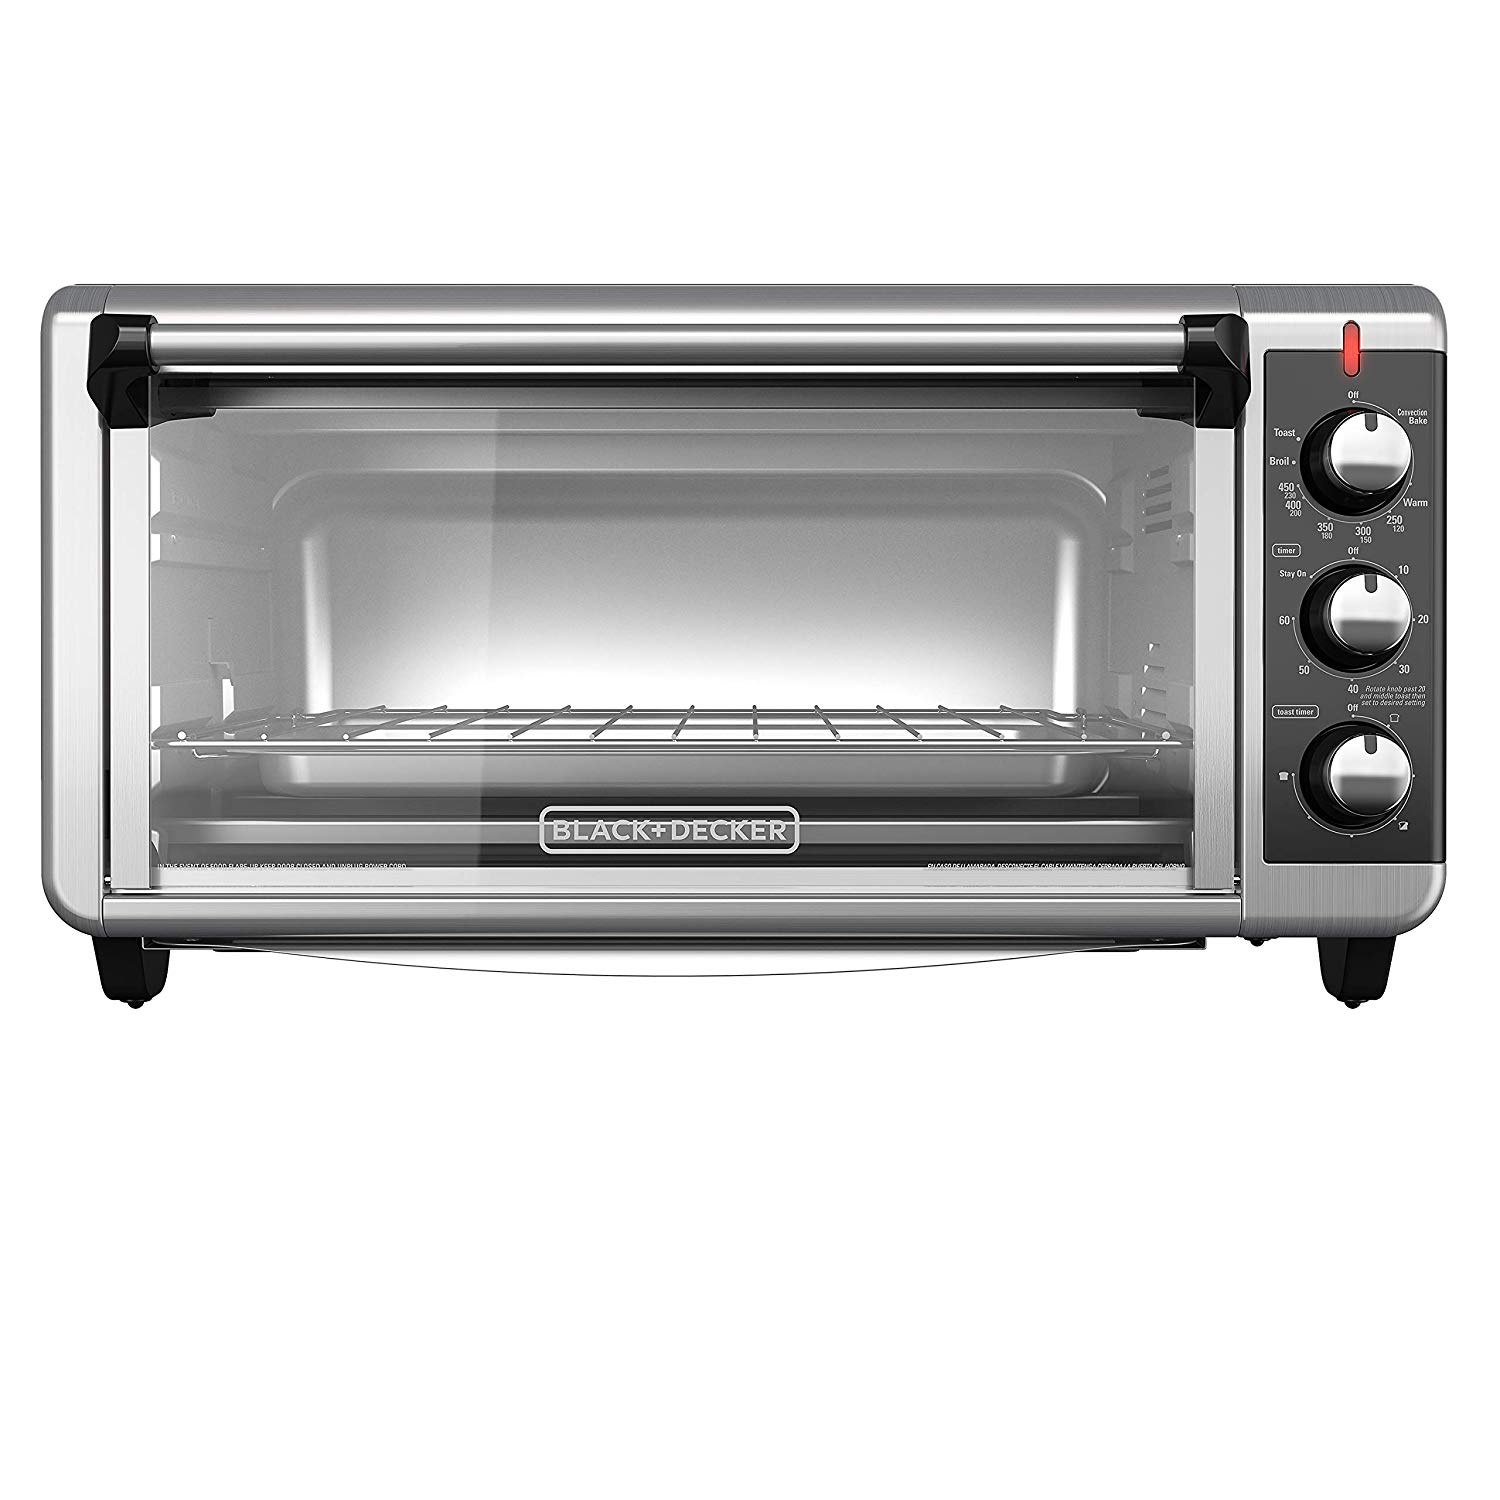 Black + decker to3240xsbd convection countertop toaster oven